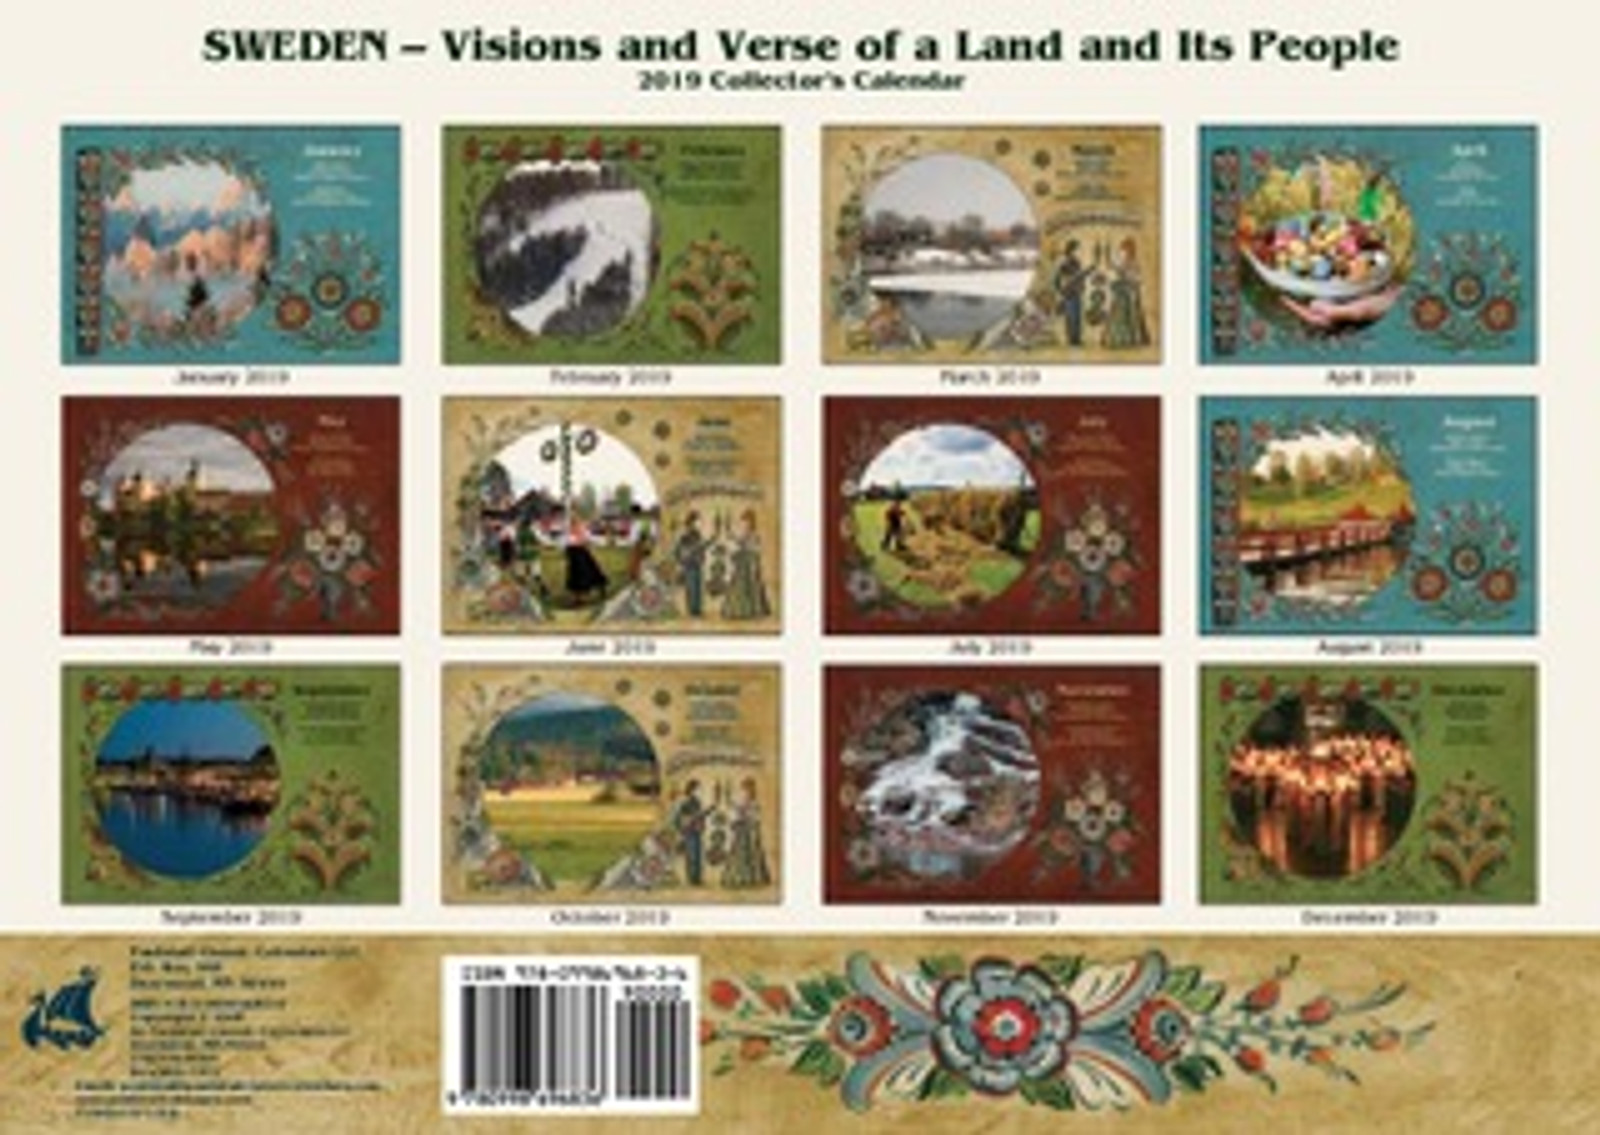 Back of the Paulstad 2019 Sweden Visions and Verse Calendar